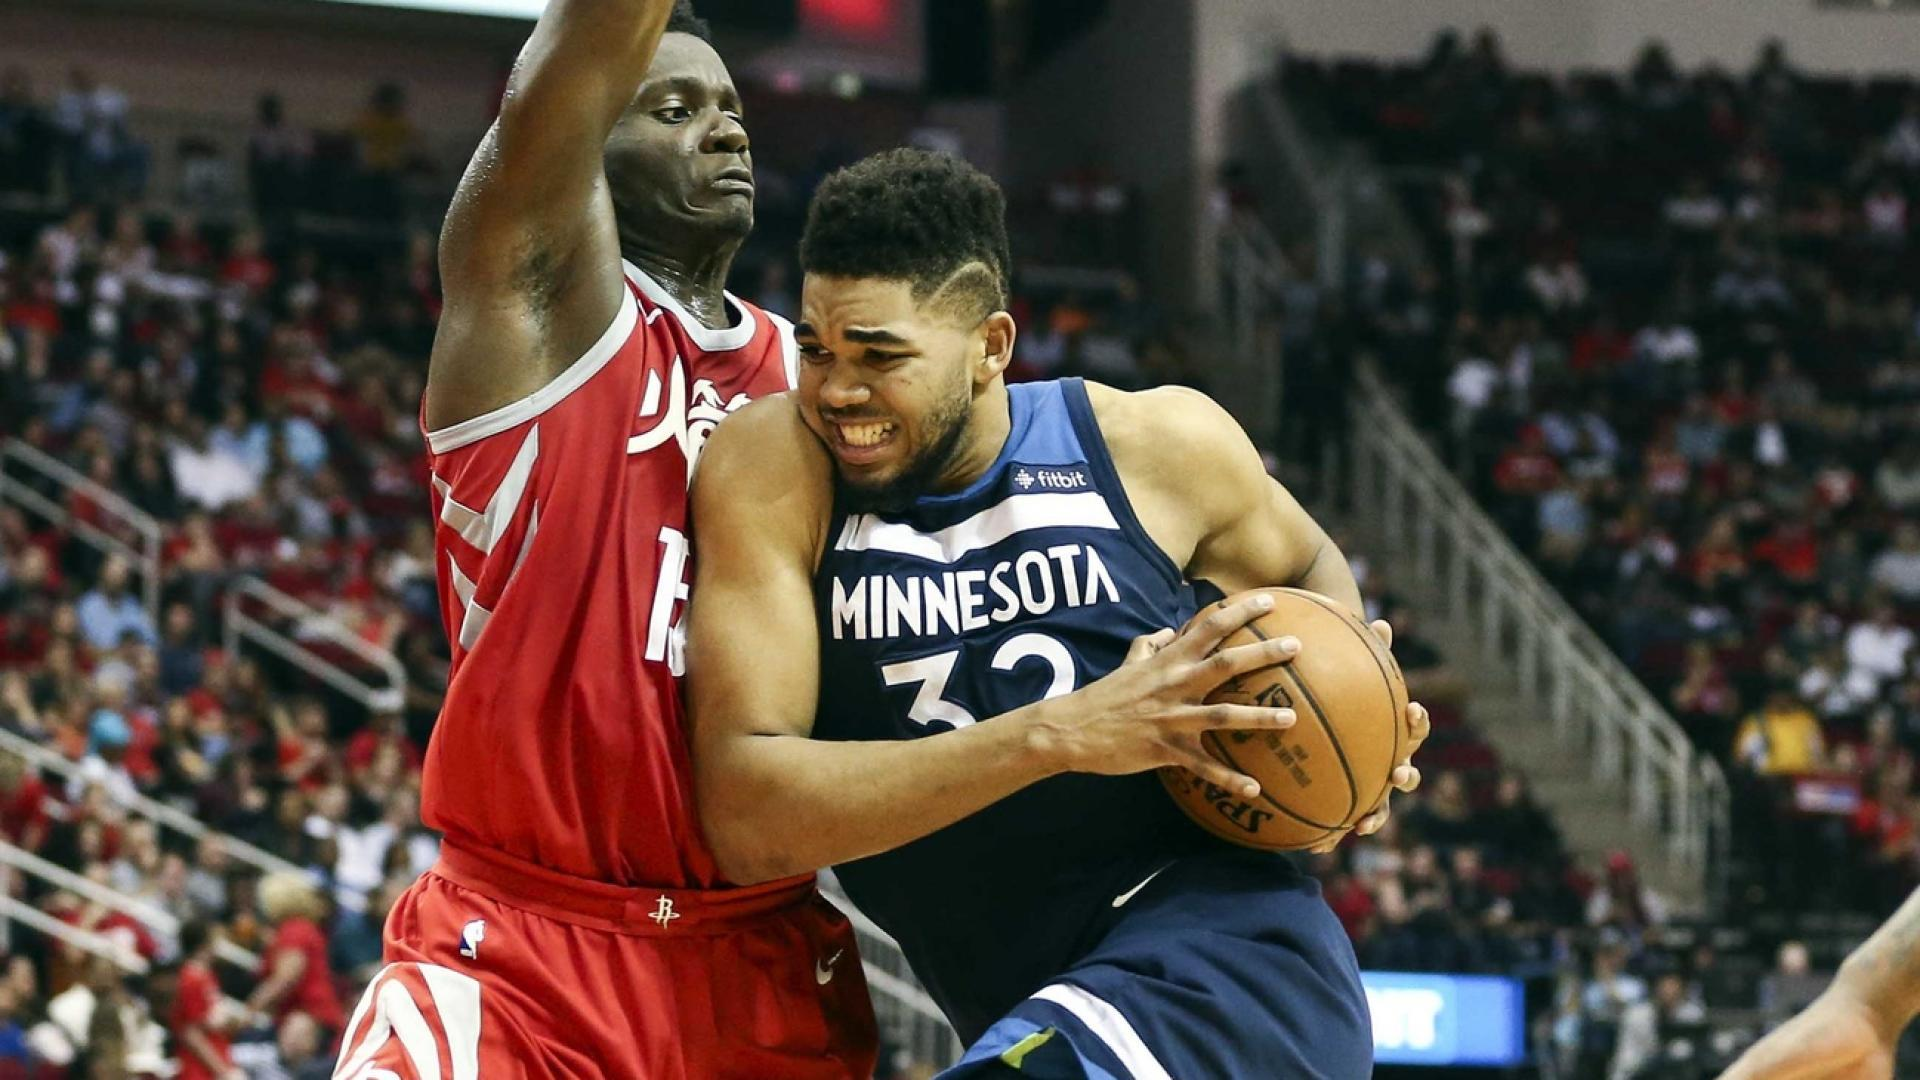 b39b07d05cf8 Numbers preview  Houston Rockets (1) vs. Minnesota Timberwolves (8 ...